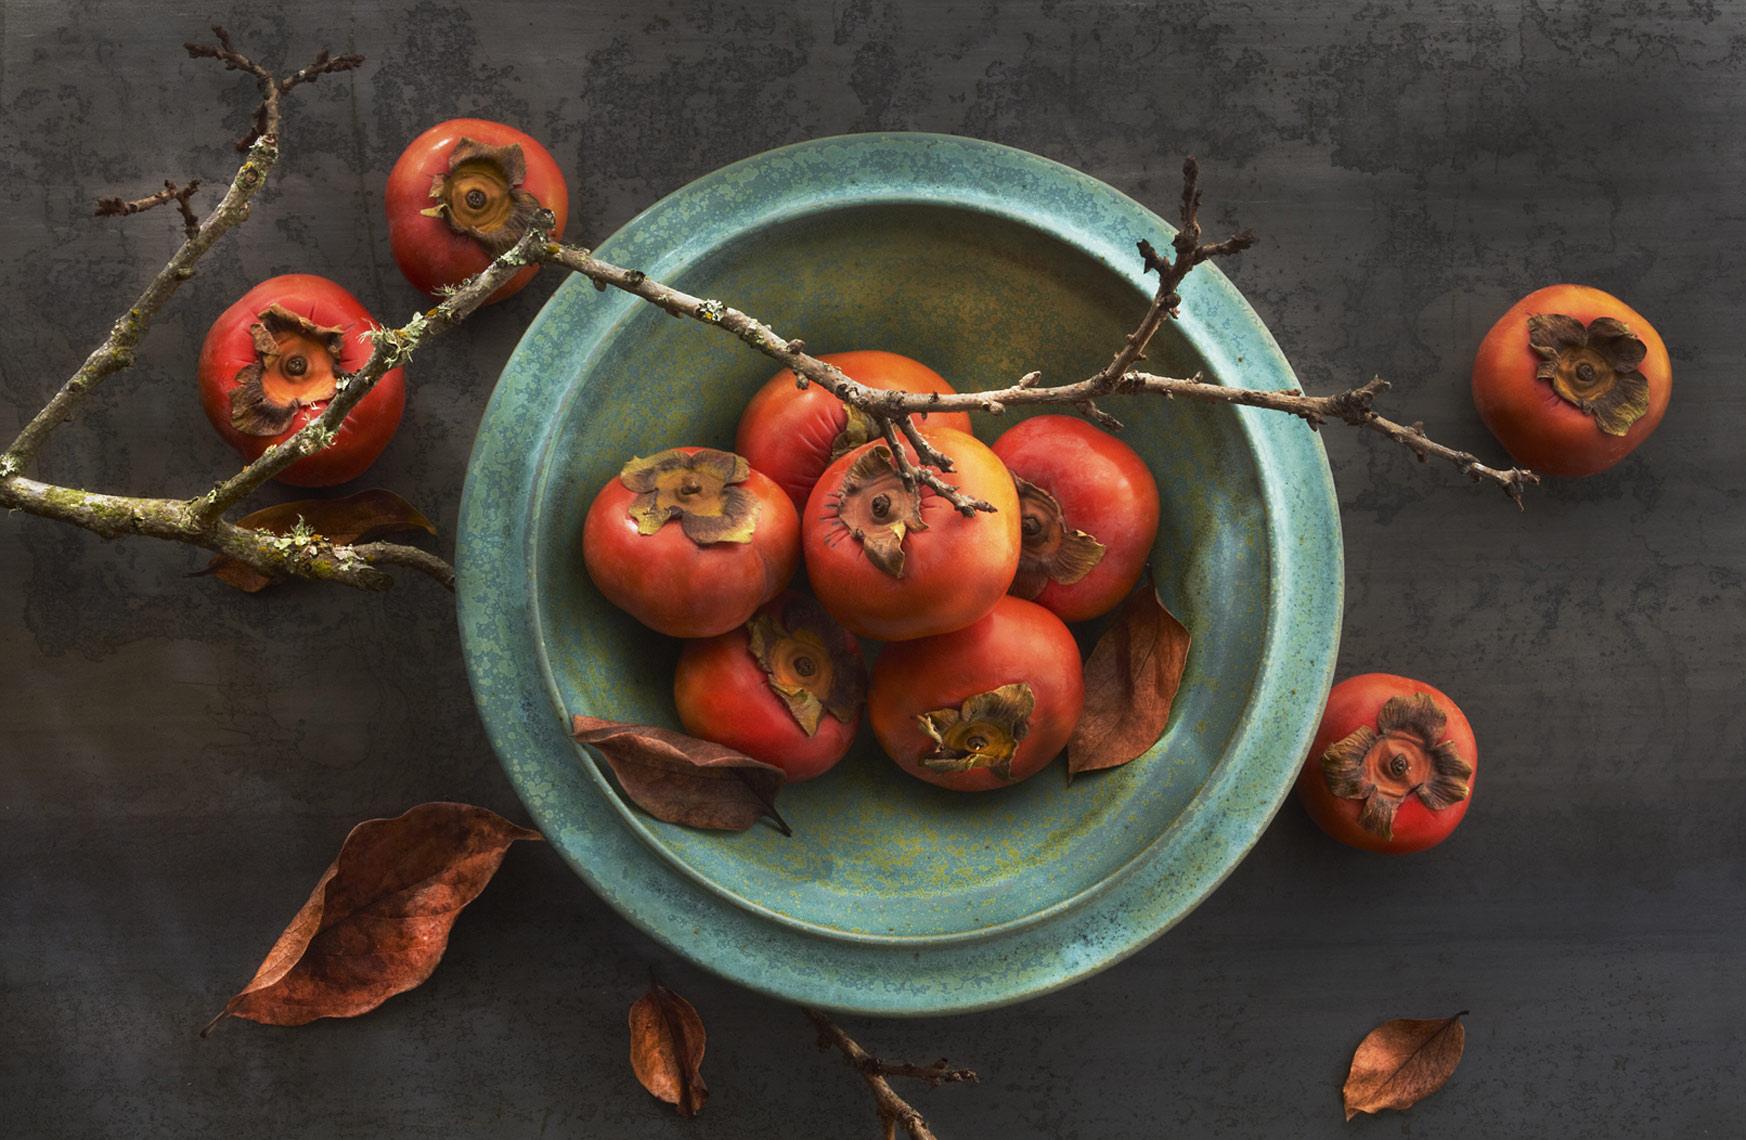 persimmons, Rose Hodges Food Photography San Francisco